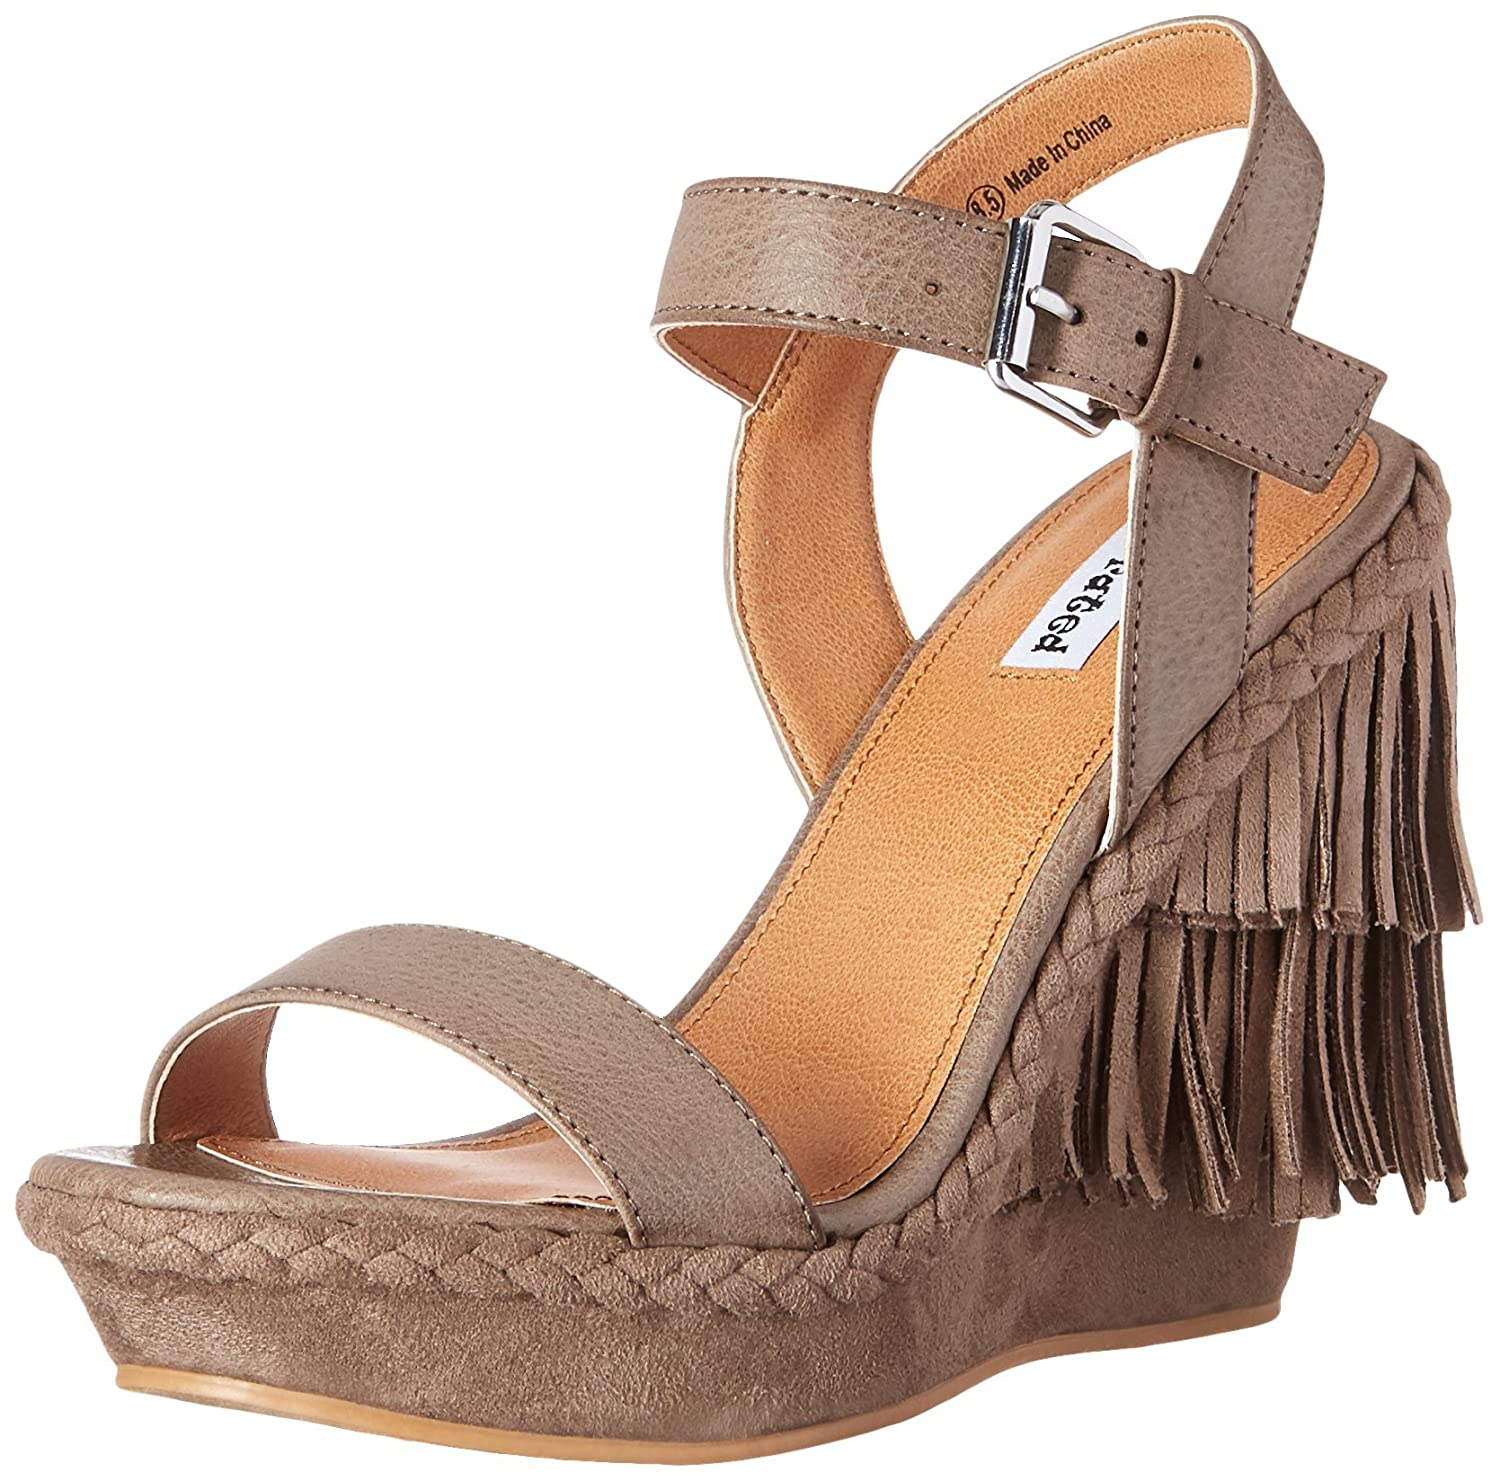 Not Rated Women's Roaring Ruby Wedge Sandal B01A2V558S 8 US/6-10 M US|Taupe